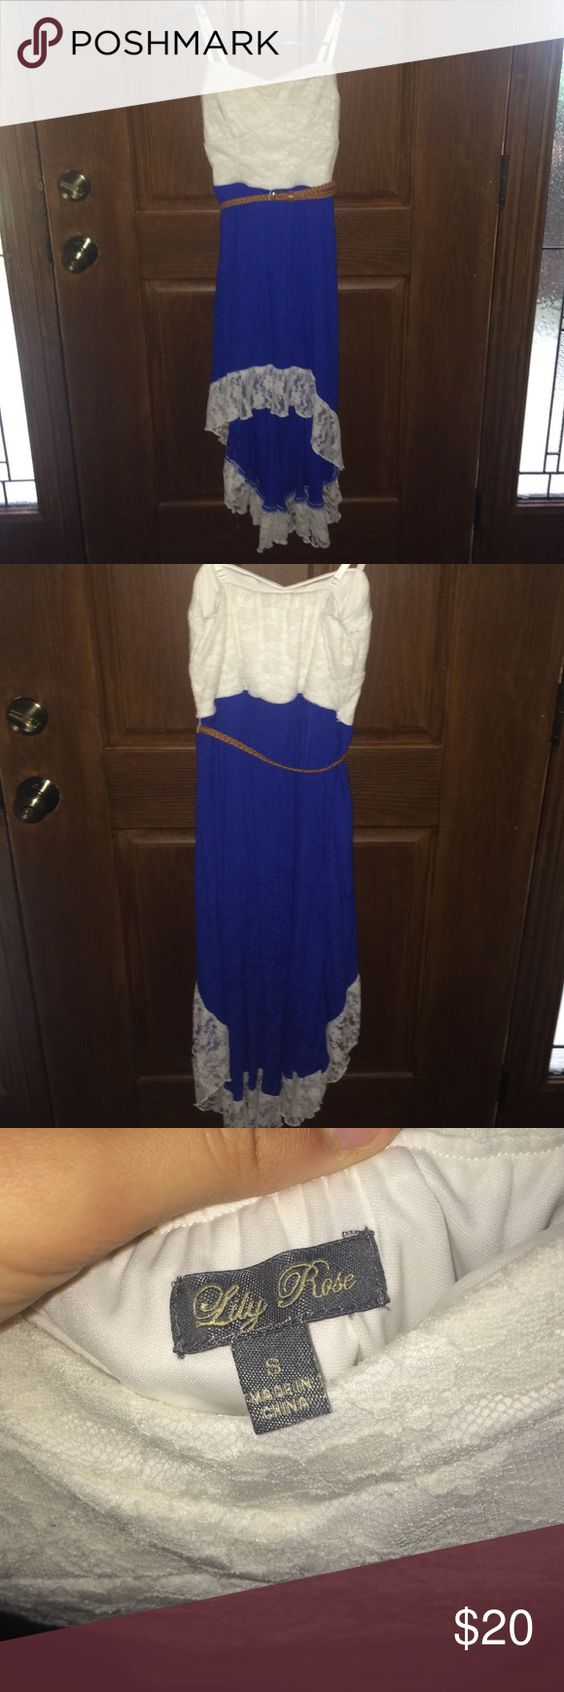 The dress is white - Blue And White Dress This Dress Has A White Lace Top With Padding The Bottom Is A High Low Style Higher In The Front And Lower In The Back